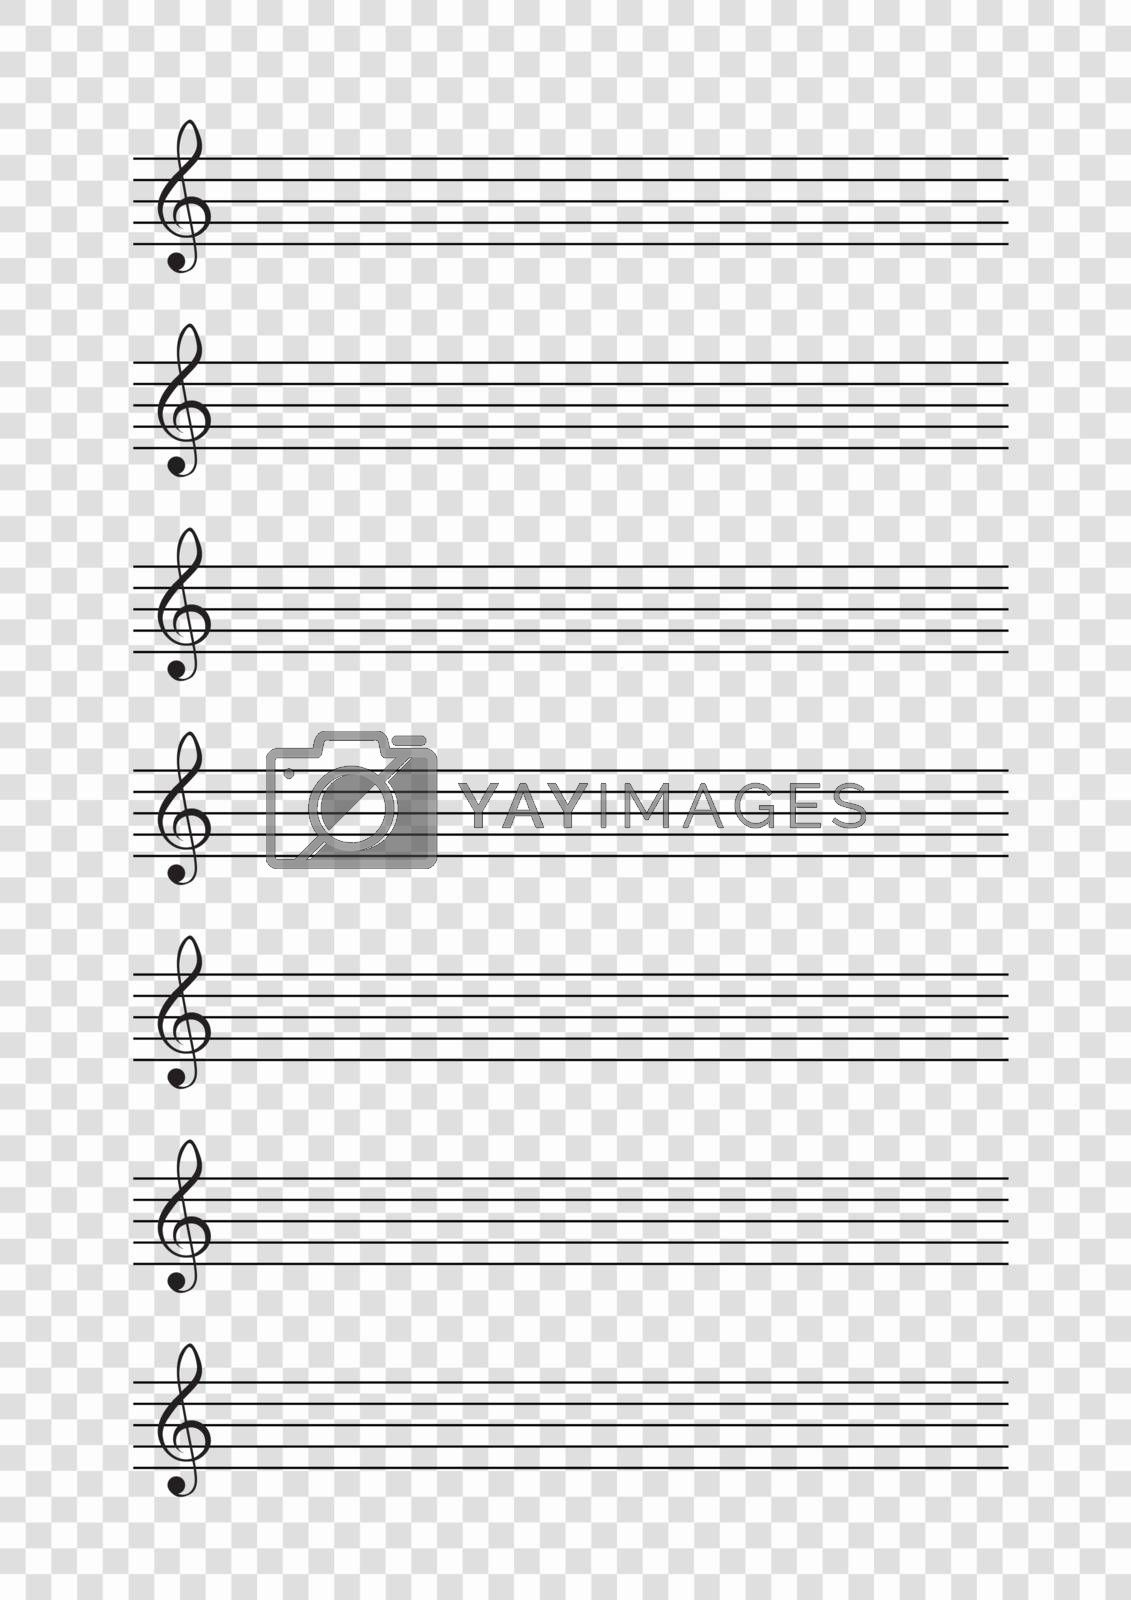 Blank A4 music notes with treble clef. Vector illustartion